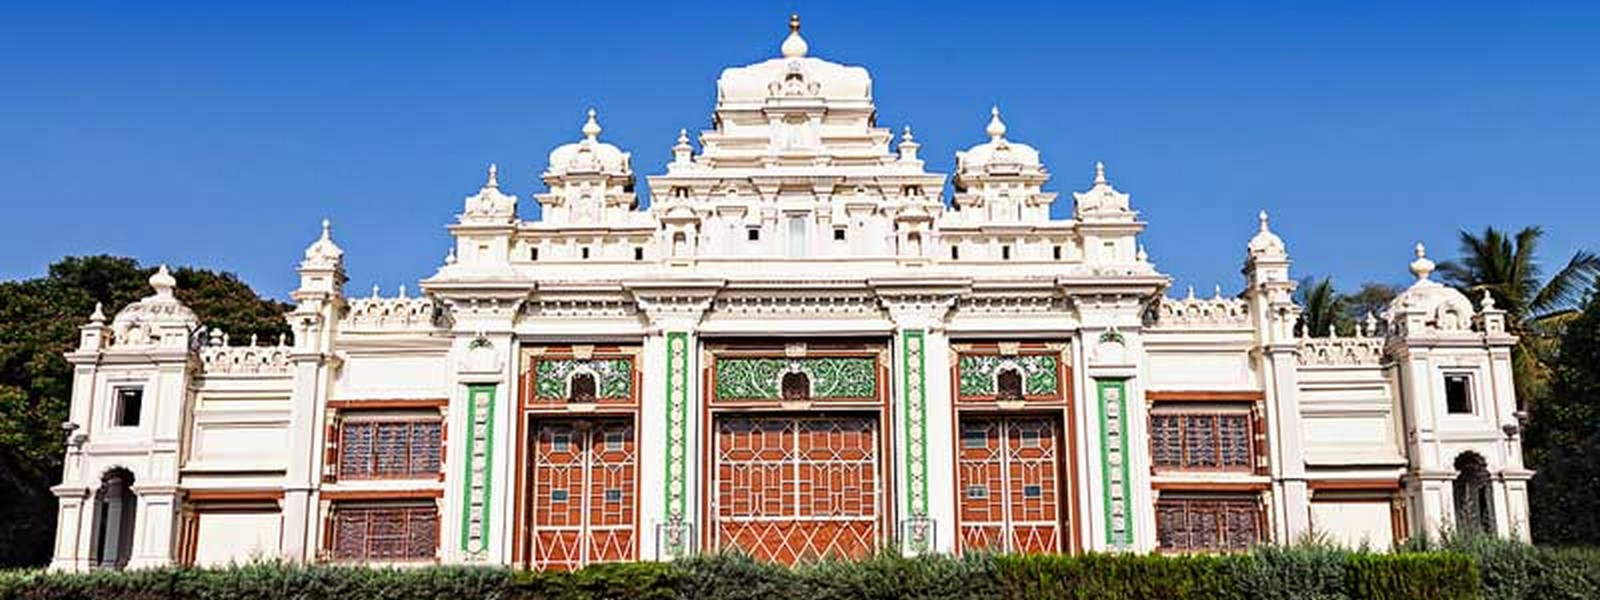 Places to visit in Mysore for the Travelling Architect - Sheet3